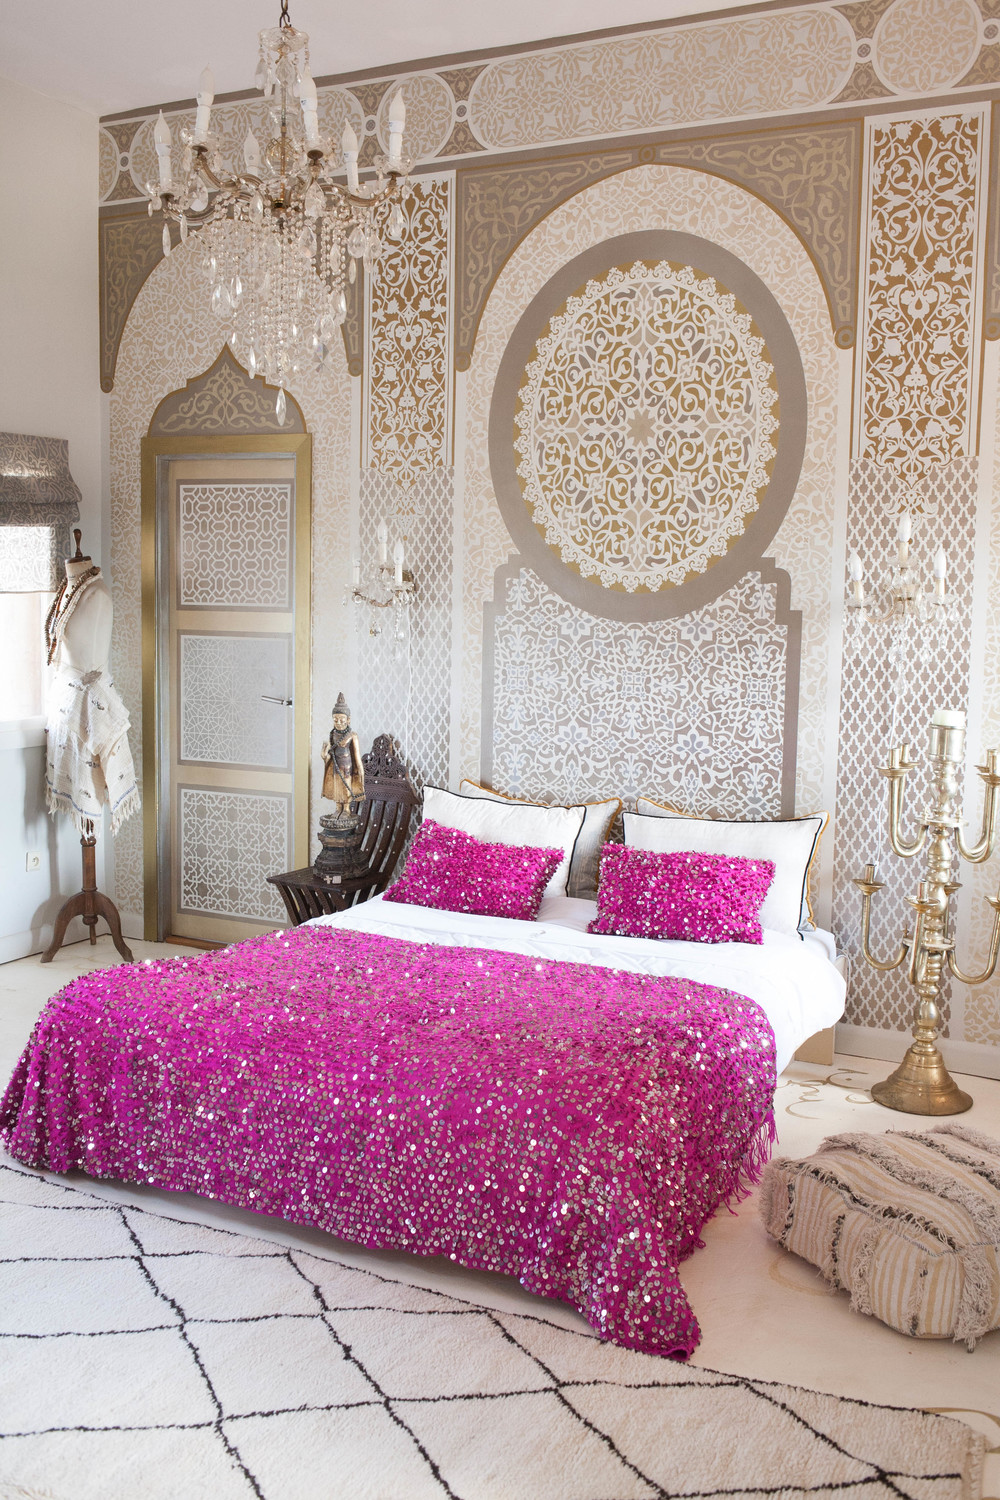 Handiras  and a dreamy tale of glamorous Moroccan bedroom ideas. Handiras  and a dreamy tale of glamorous Moroccan bedroom ideas